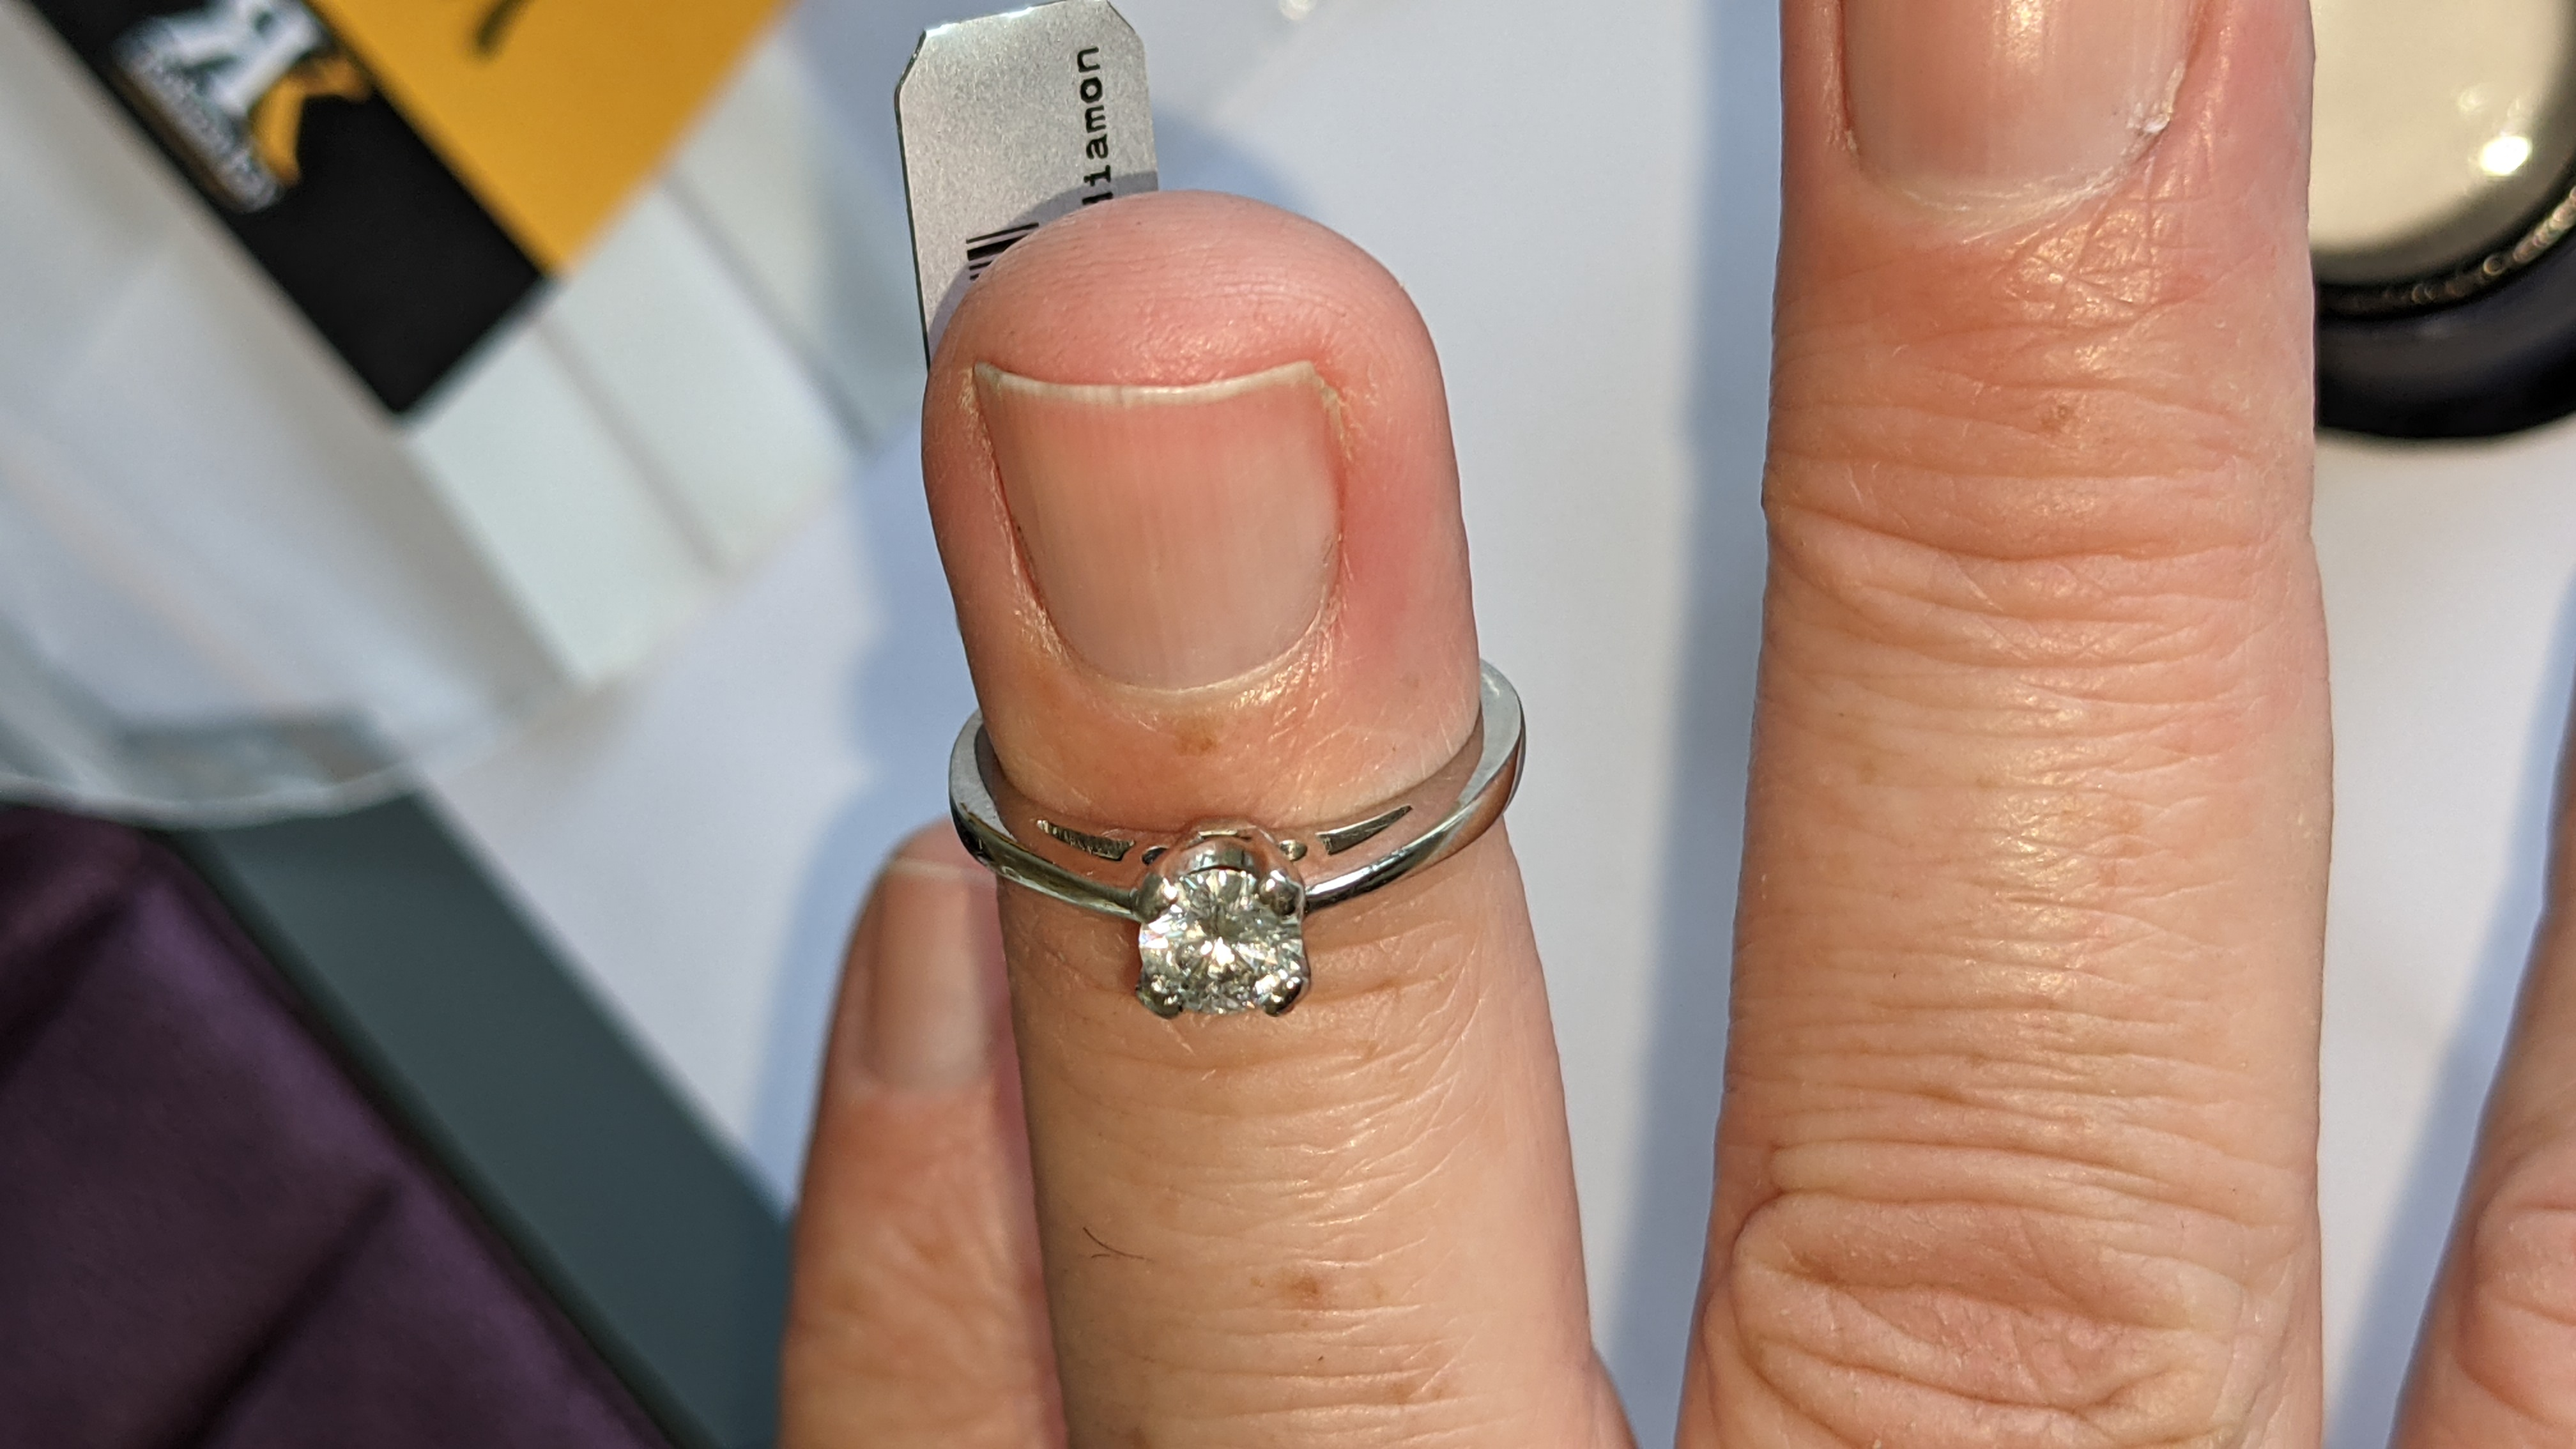 Platinum 950 ring with 0.50ct diamond. Includes diamond report/certification indicating the central - Image 15 of 25